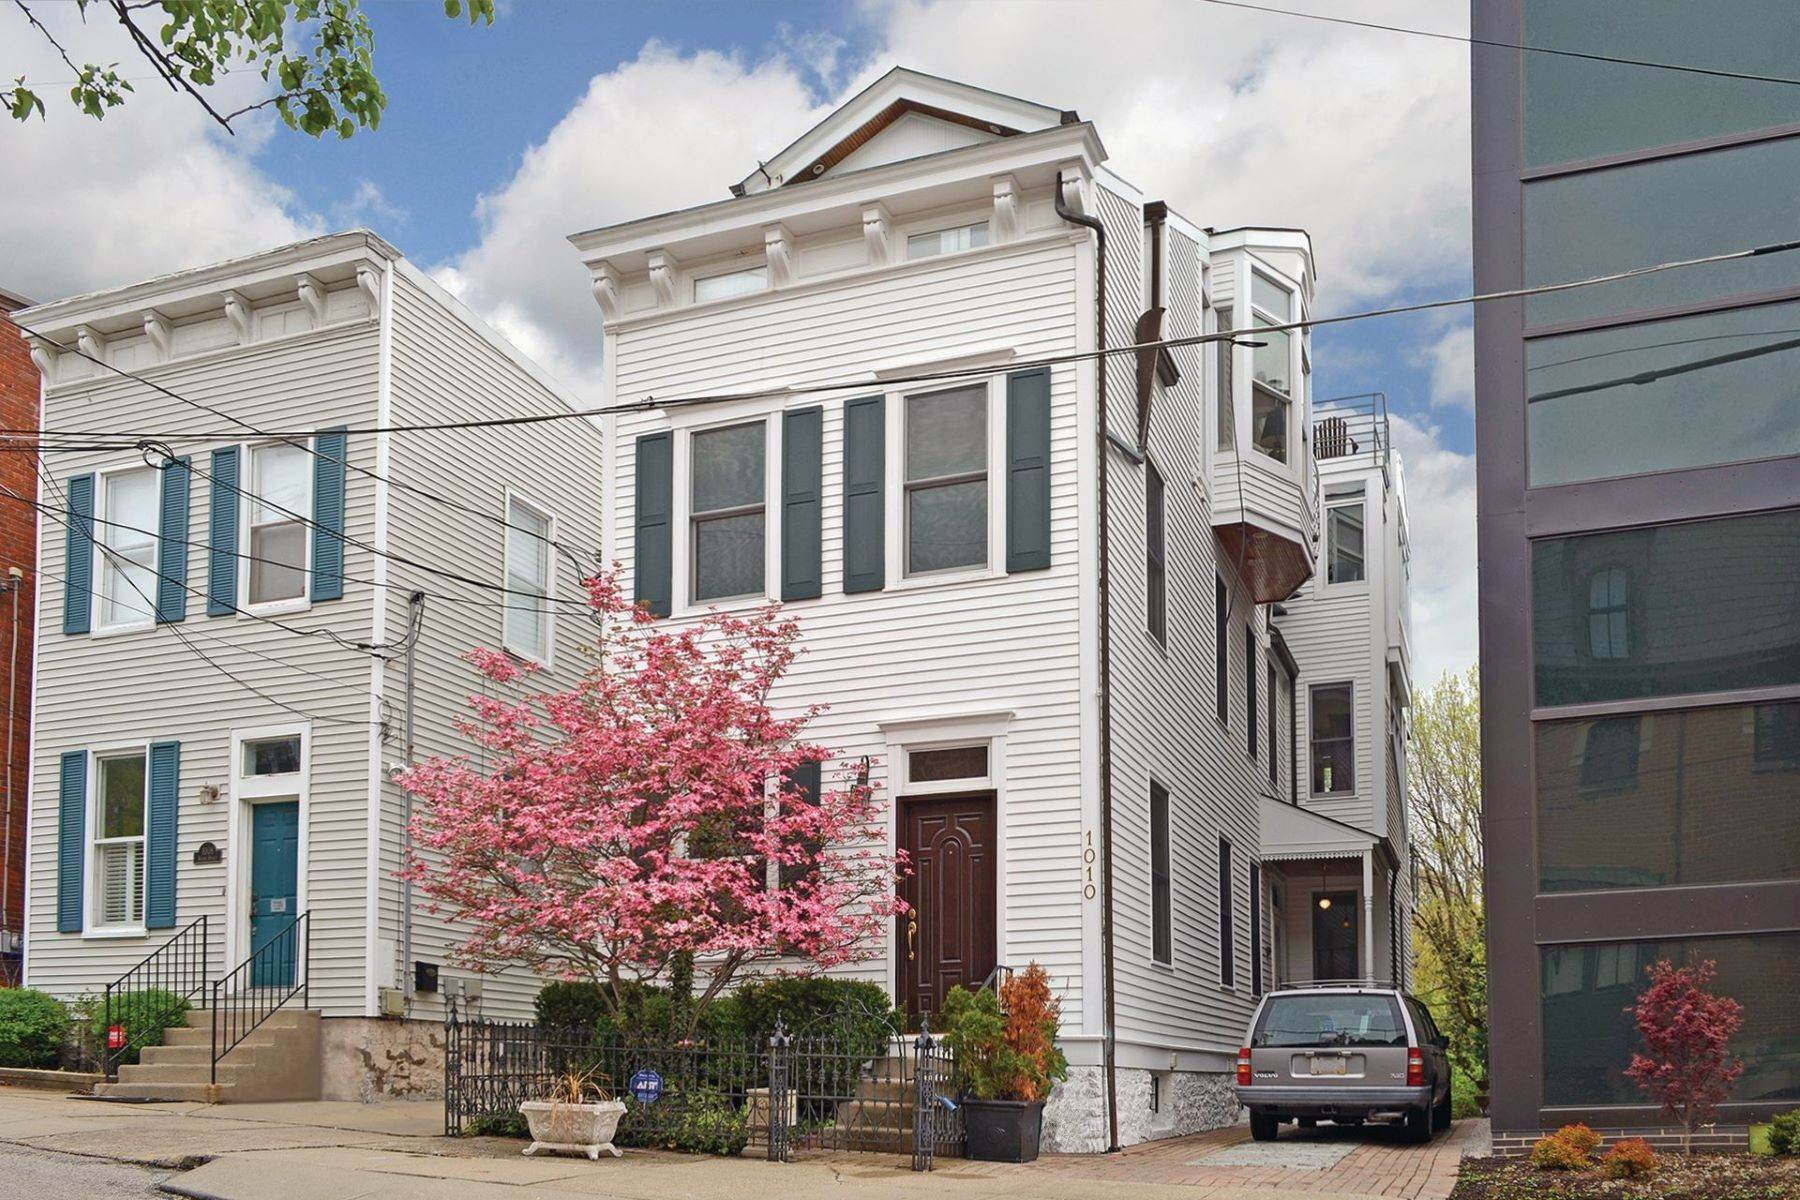 Single Family Homes for Sale at 1010 Hatch Street, Cincinnati, OH 45202 1010 Hatch Street Cincinnati, Ohio 45202 United States